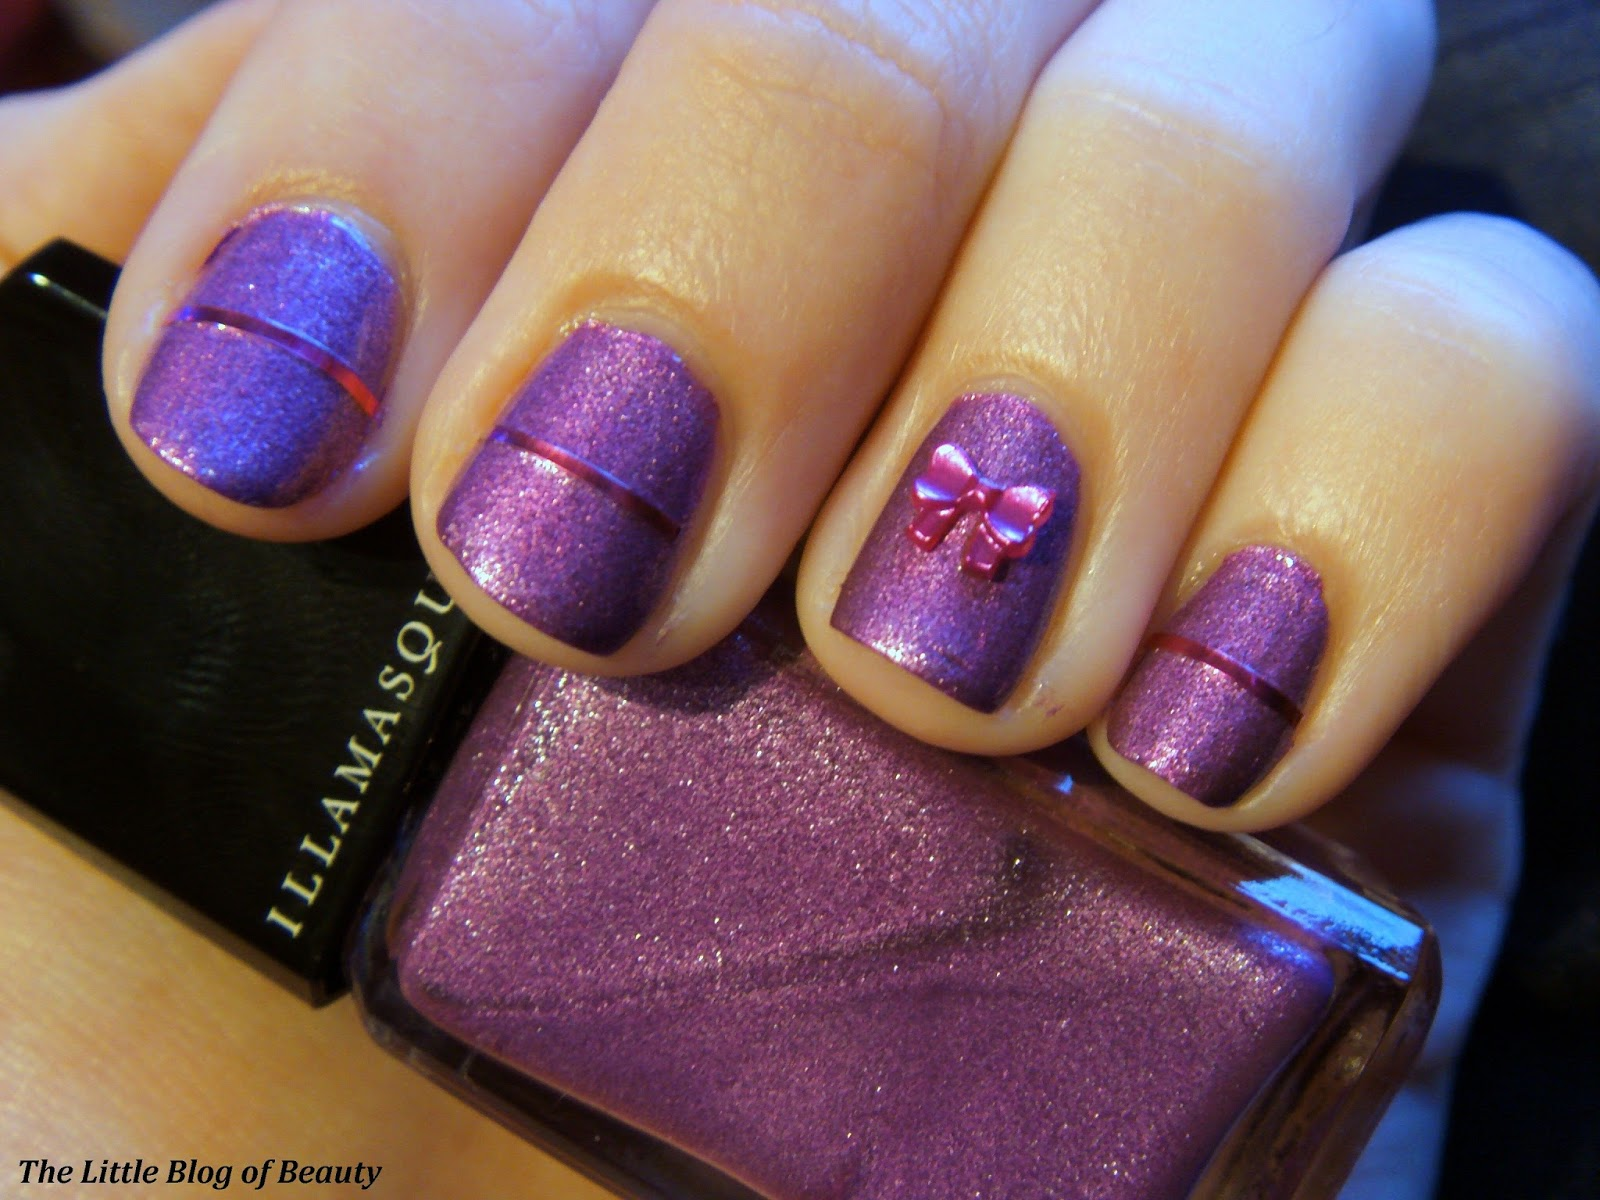 Christmas nail art - gift wrapped nails | The Little Blog of Beauty